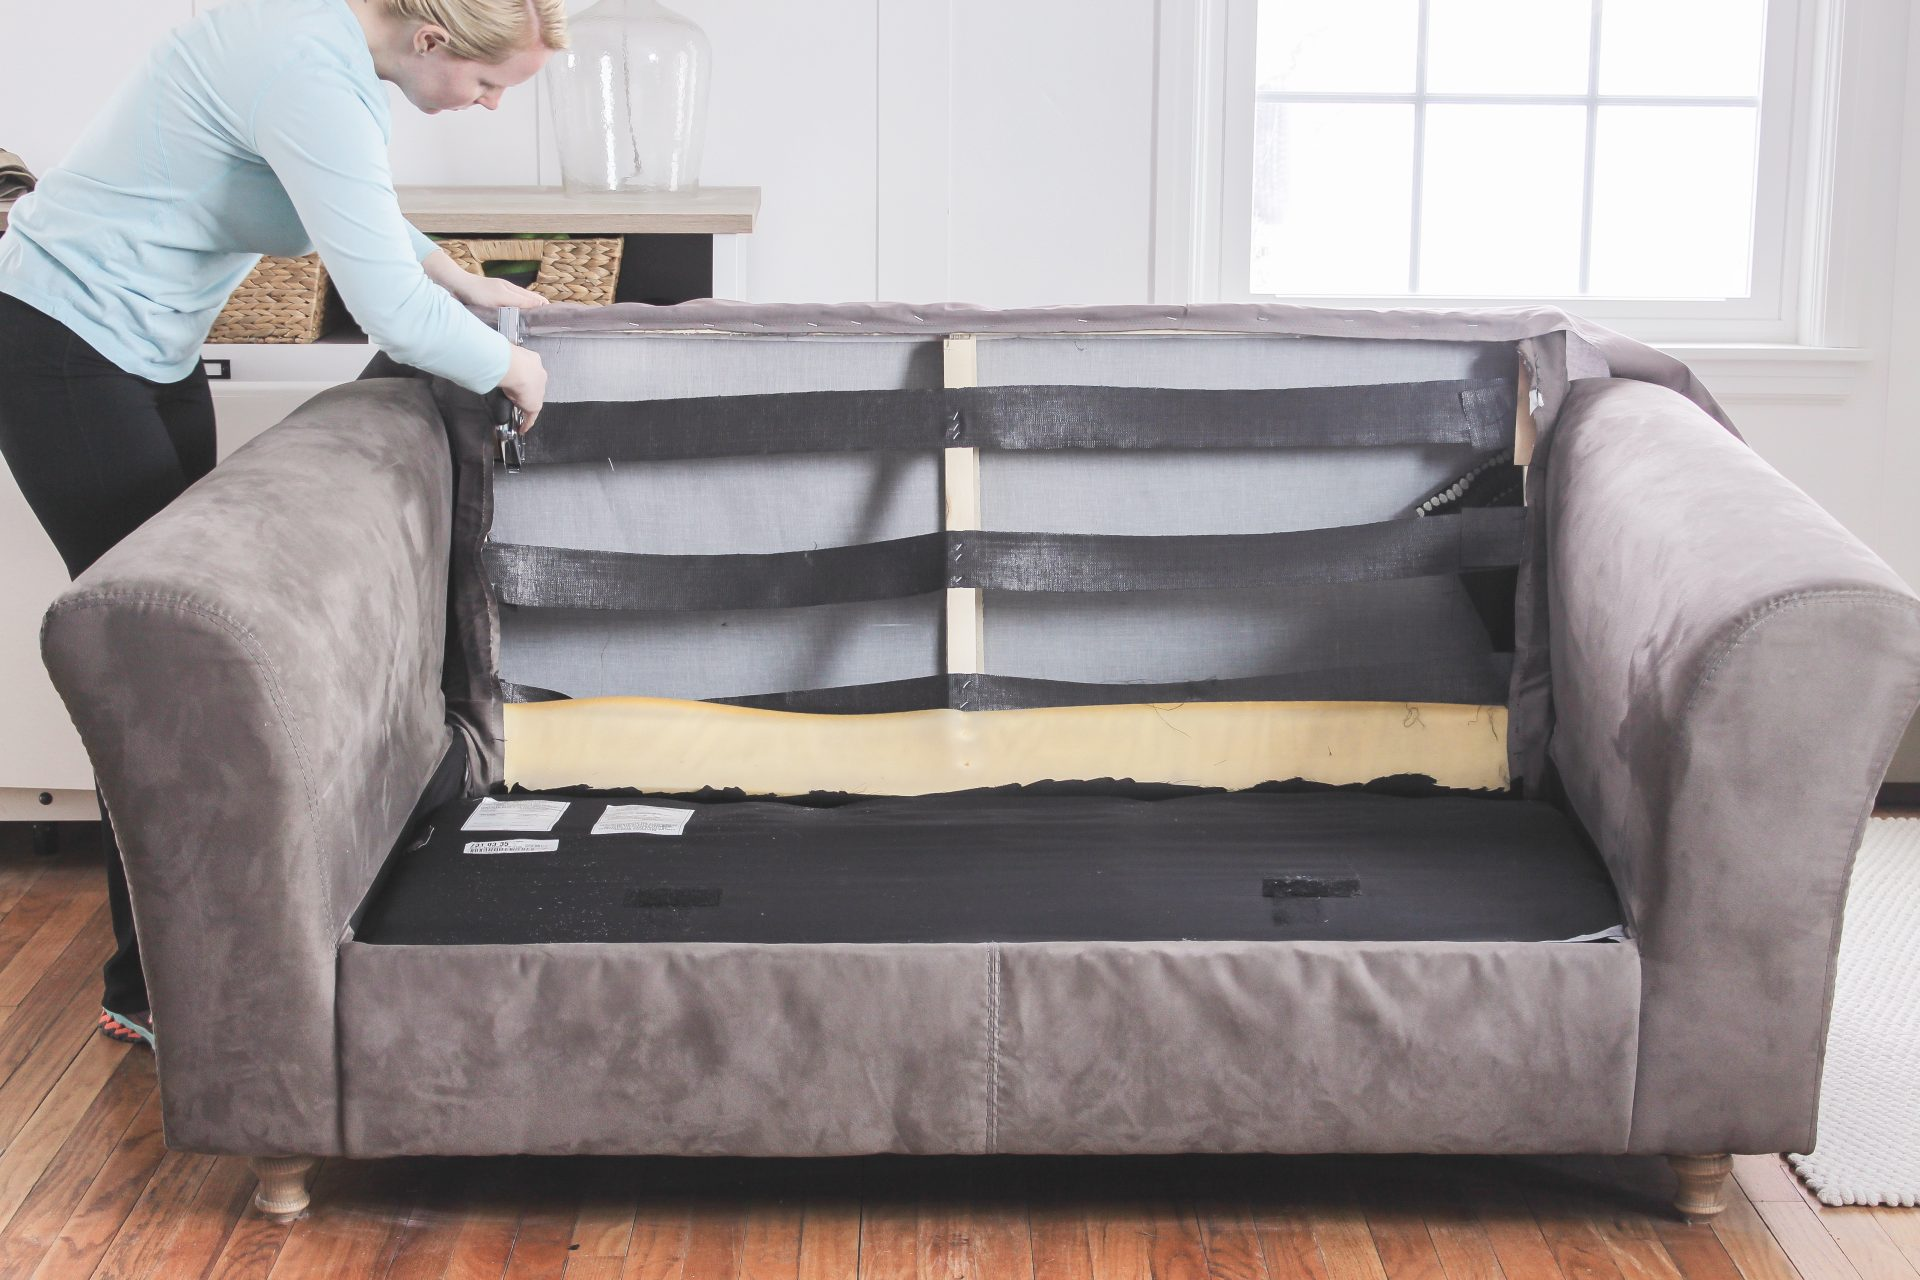 How To Fix A Sagging Couch Re, How To Fix A Sleeper Sofa